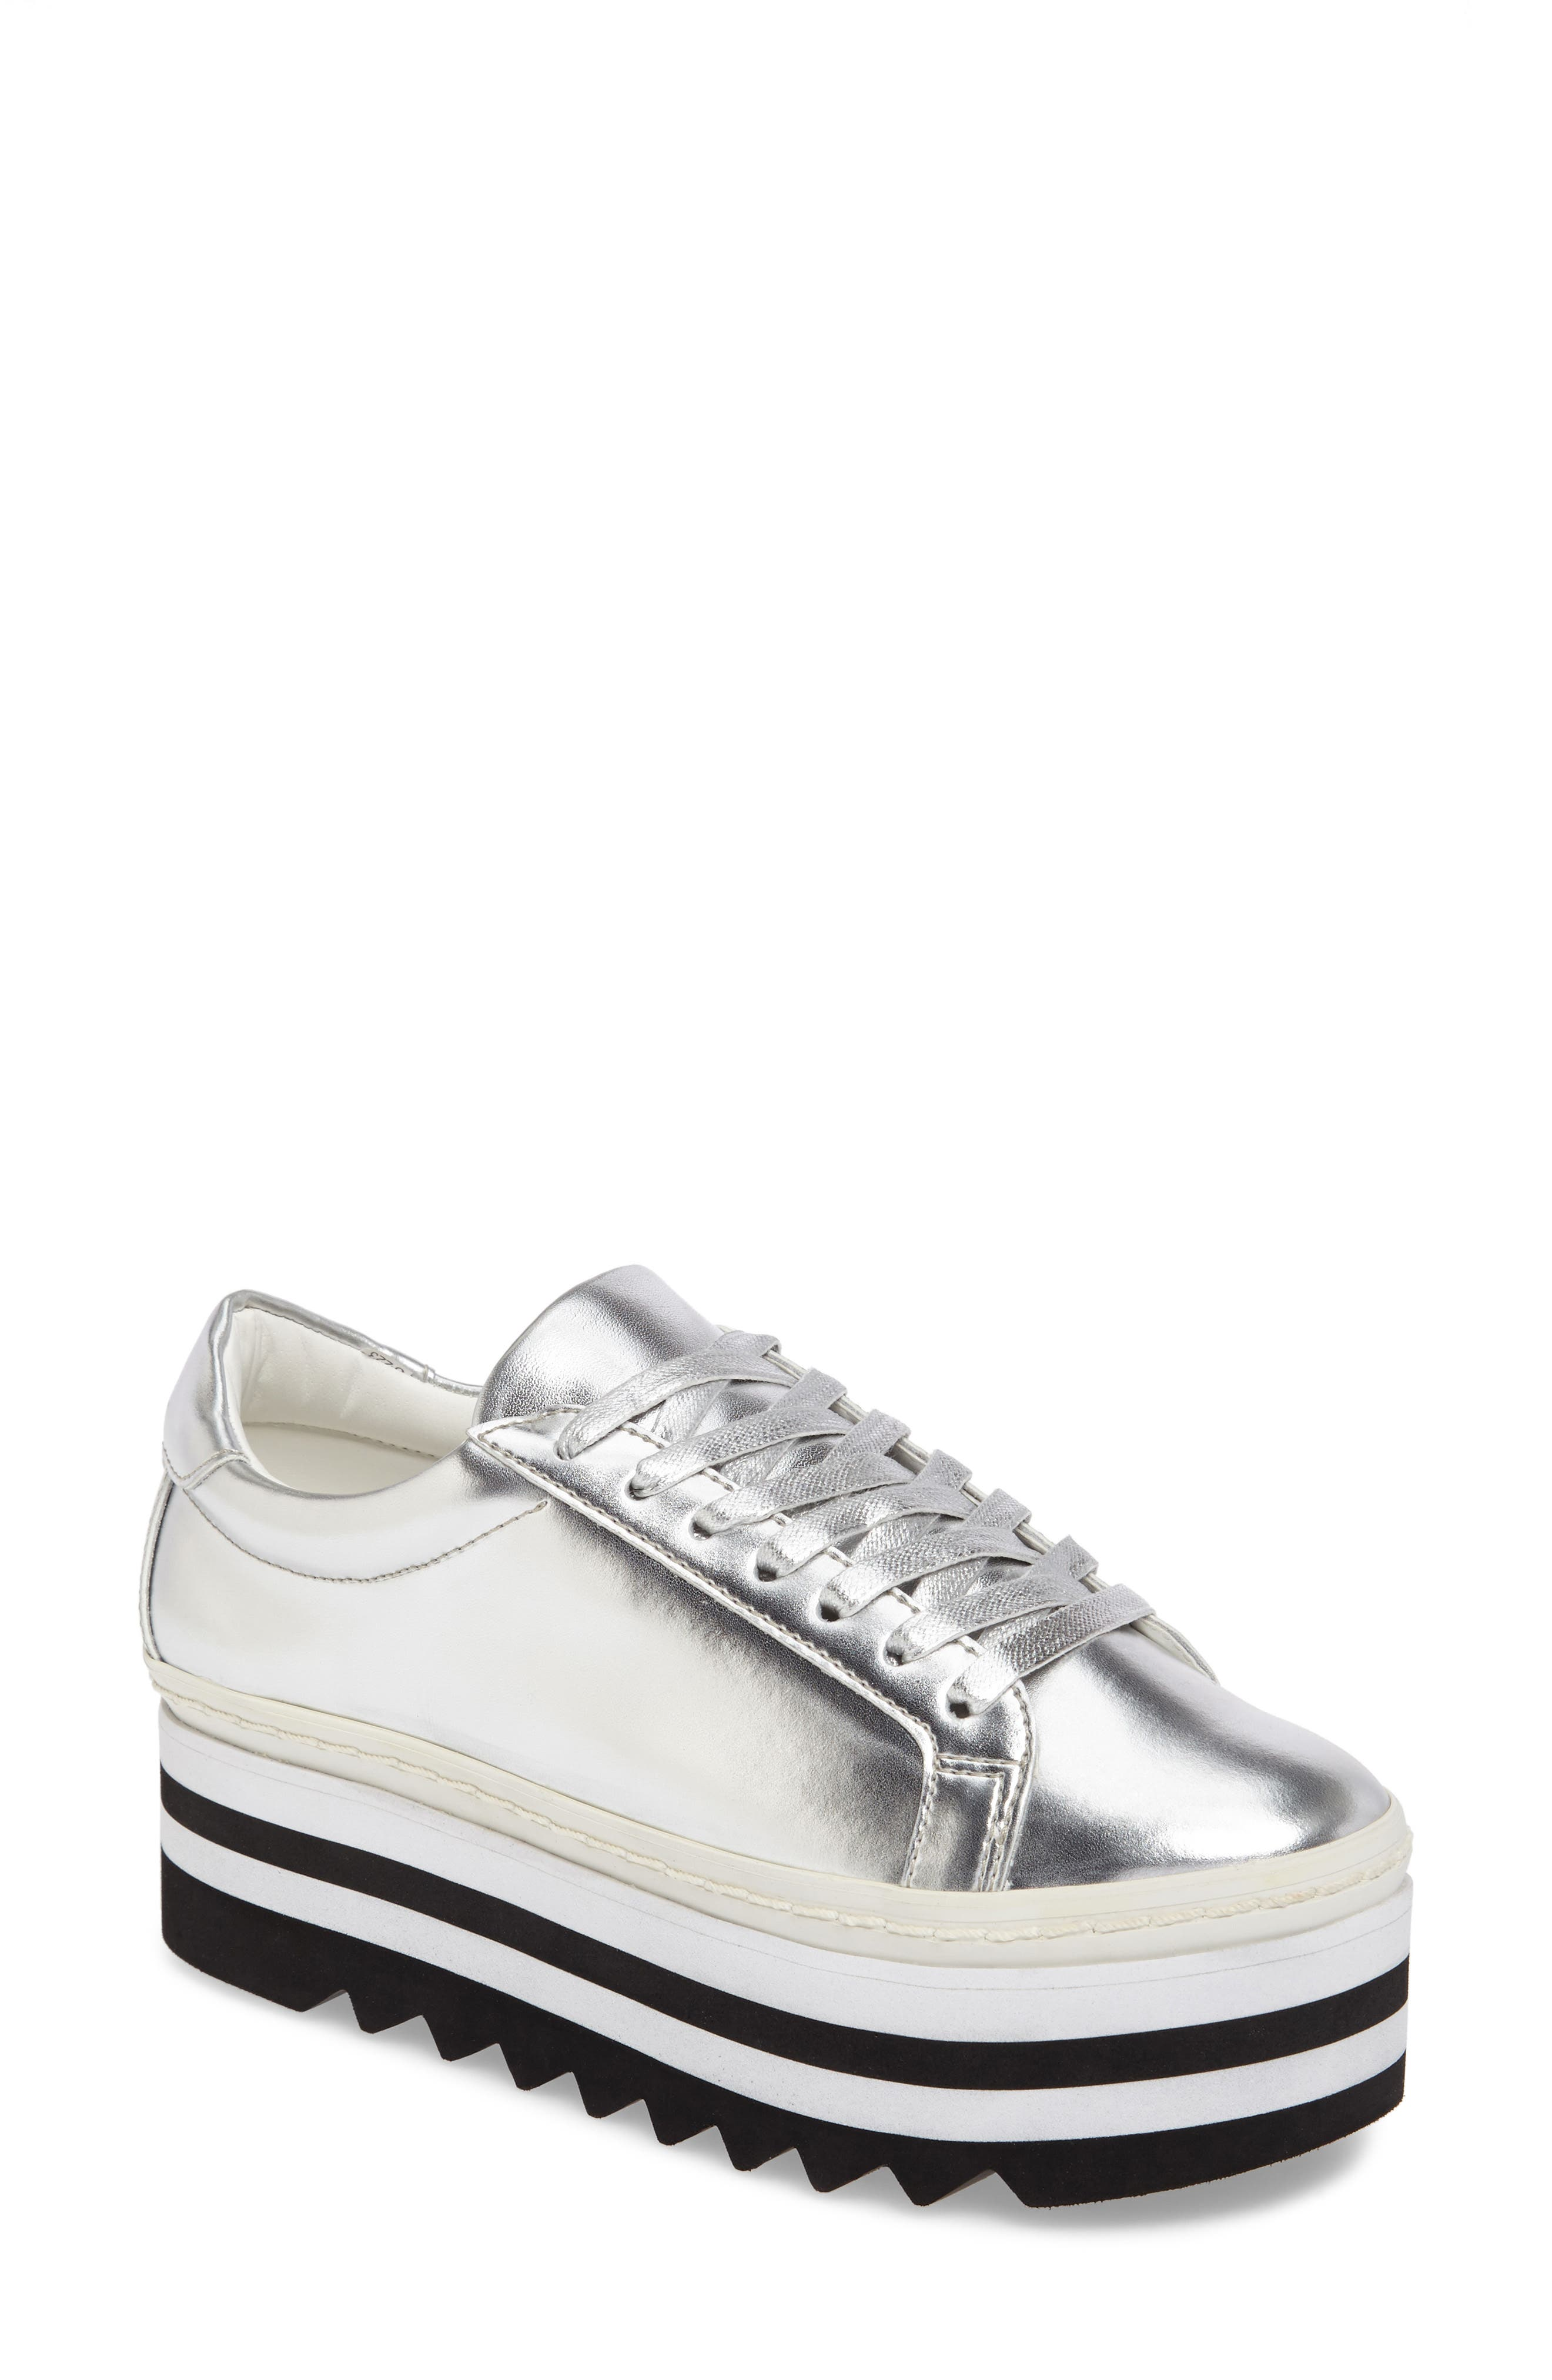 Steve Madden Perry Lugged Platform Sneaker (Women)